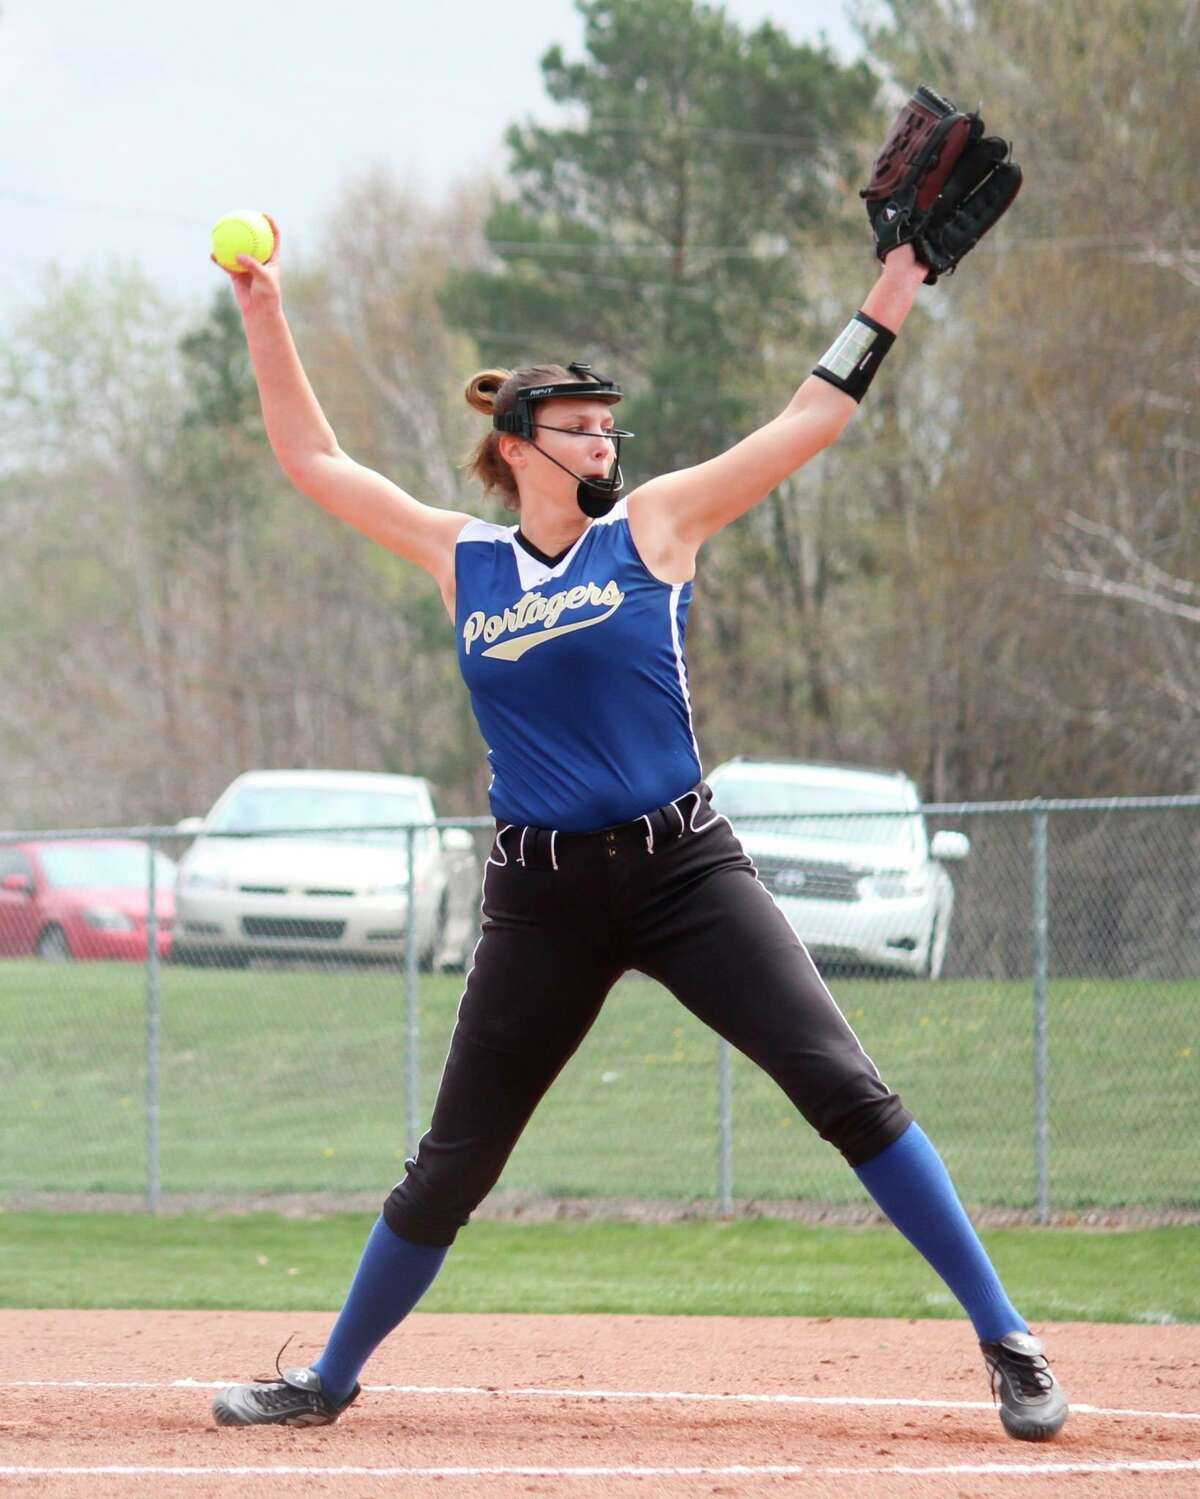 Onekama's Sophie Wisniski struck out 20 batters total in the Portagers' doubleheader with Hart on Friday. She also had two home runs at the plate. (News Advocate file photo)